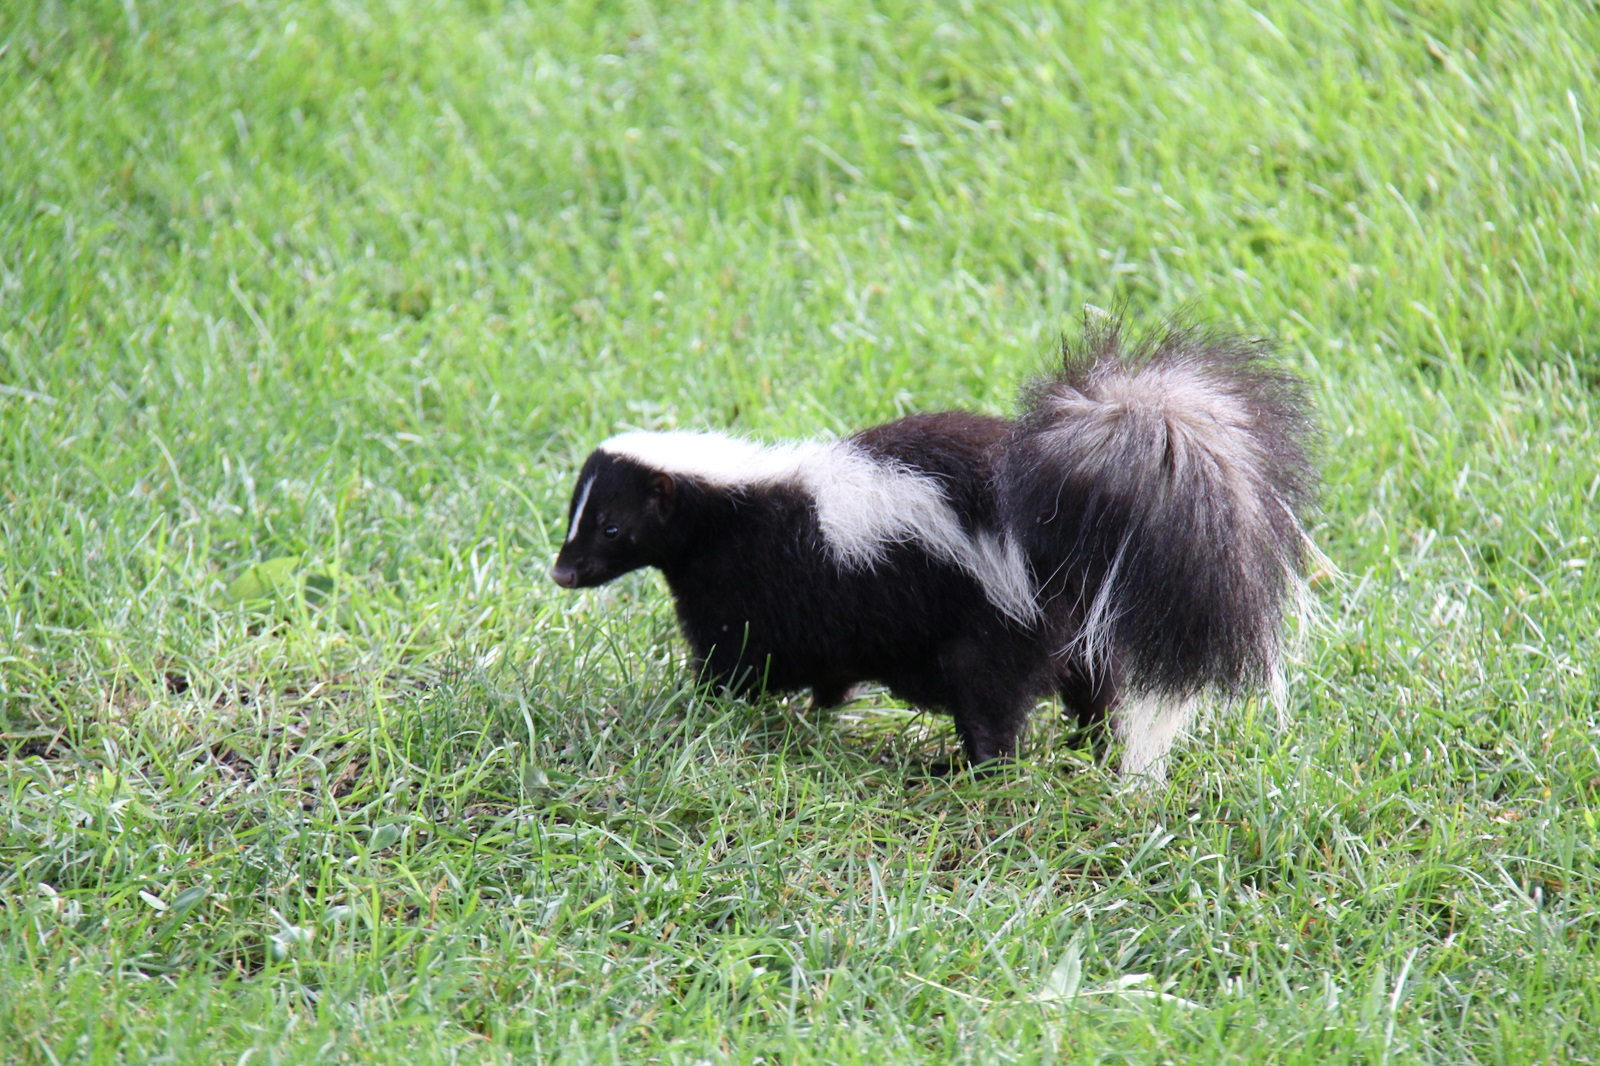 Skunk In Backyard john koshy: #wildlife skunk in the backyard